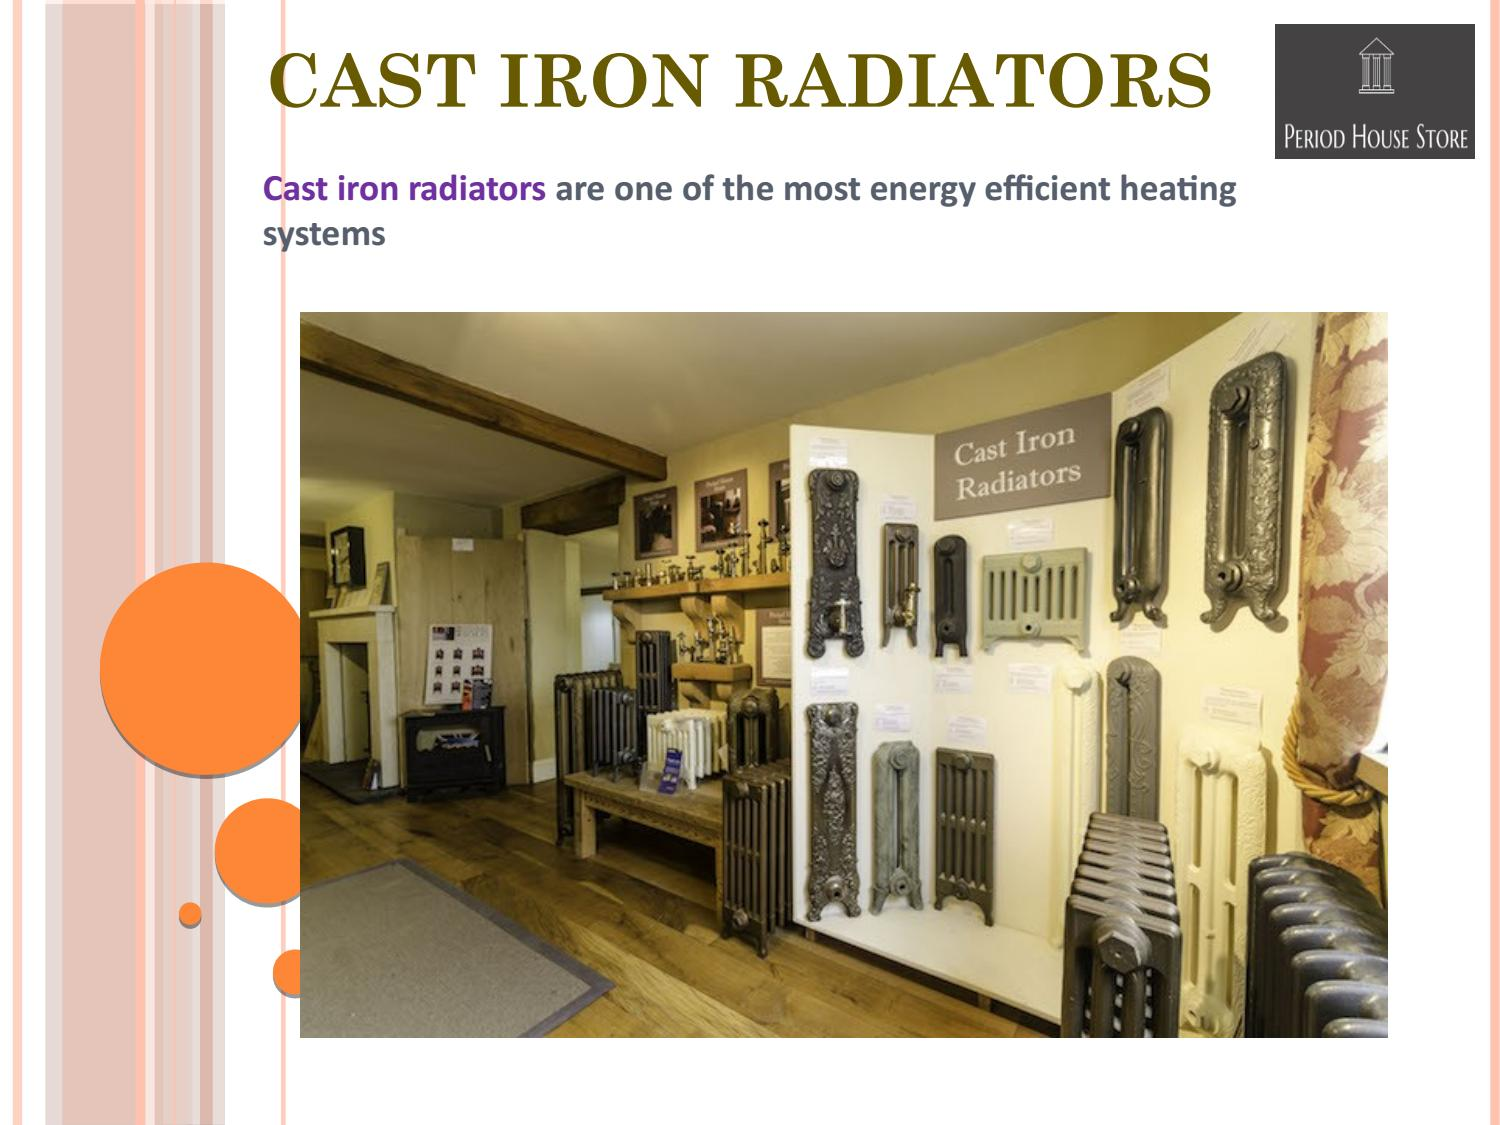 Cast Iron Radiators Suitable To Heat Any Home And Office In This Winter By Period House Store Issuu